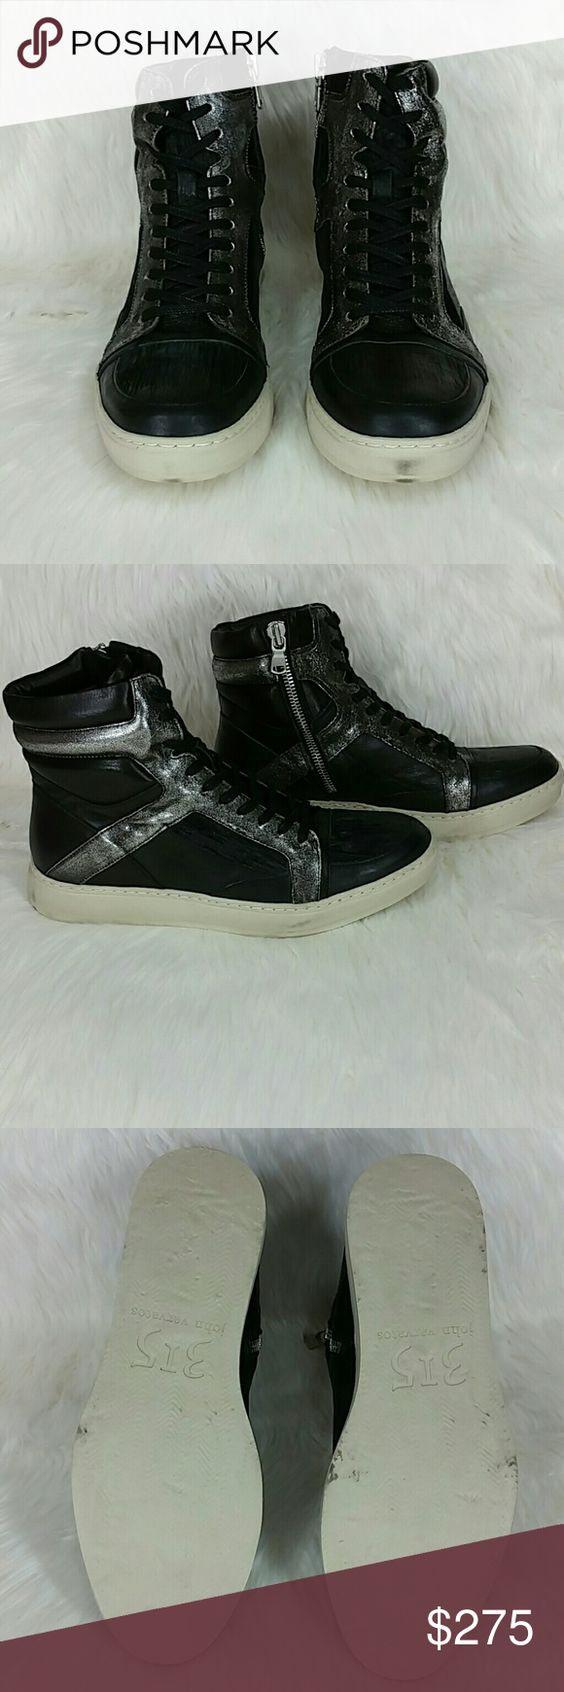 """JOHN VARVATOS Mac leather paneled hi top sneakers SAVE 60%  These striking leather high tops from John Varvatos Collection feature a zip closure and metallic panels for modern sneakers with a rock star edge.   Made in Italy.  Approximately 1.5"""" midsole.  Paneled leather upper with metallic leather sections.   Rounded toe, padded tongue, padded cuff, exposed silvertone zipper, black flat laces.   New with box and dust bag. Never worn.  Can provide more pictures and info upon request.  Make an…"""